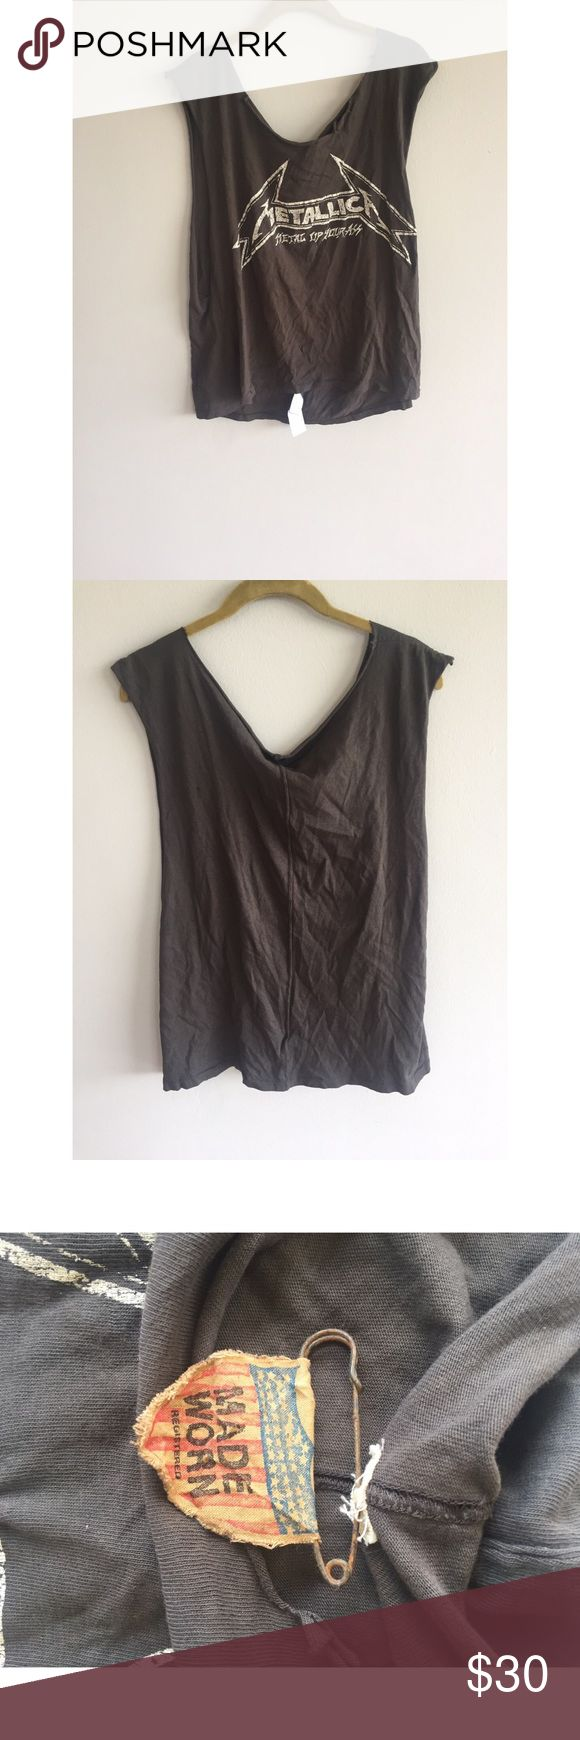 """METALLICA Gray Muscle Shirt This shirt is brand new. THE HOLES ARE SUPPOSED TO BE IN THE SHIRT. This muscle shirt measures approximately 100% Cotton Shirt measure approximately 21"""" Long METALLICA Tops Muscle Tees"""